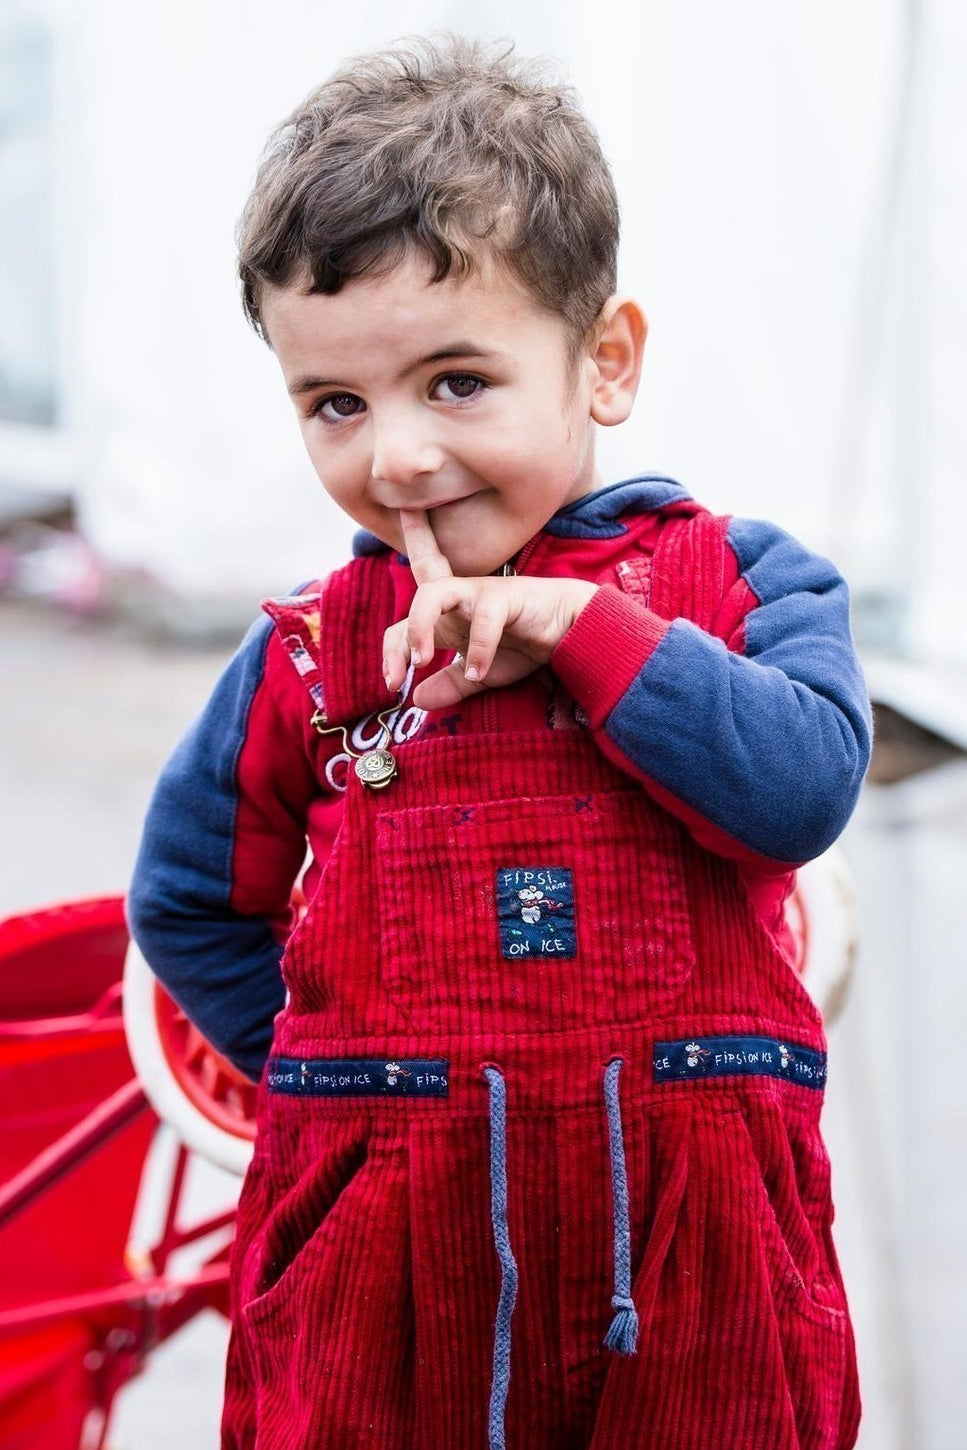 On 5 November 2015, Mohamed (2) one of three brothers who are refugees from the Syrian Arab Republic in a temporary tented camp for refugees run by Johanniter in Cologne